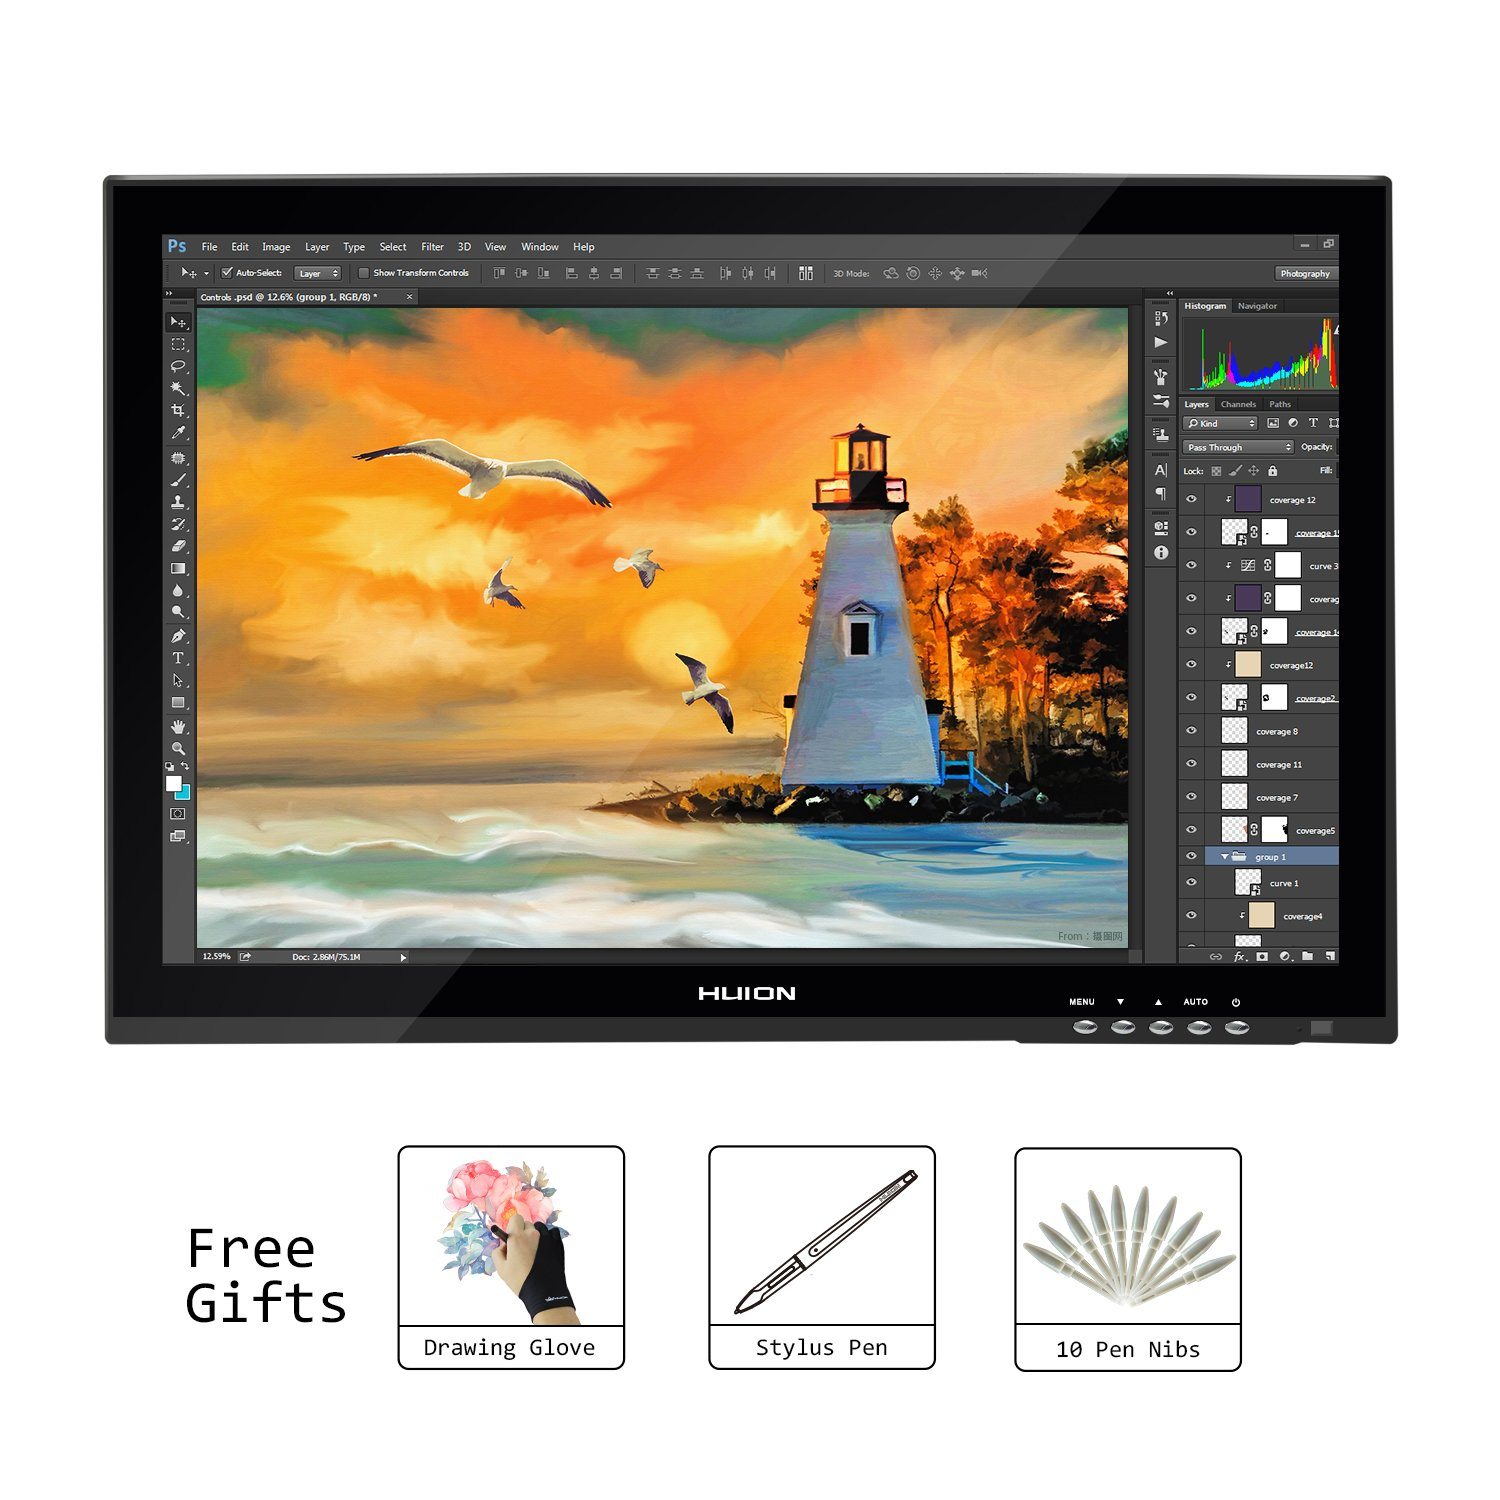 Huion GT-190 19 Inches Grpahics Drawing Monitor Digital Pen Display for PC and Mac by Huion